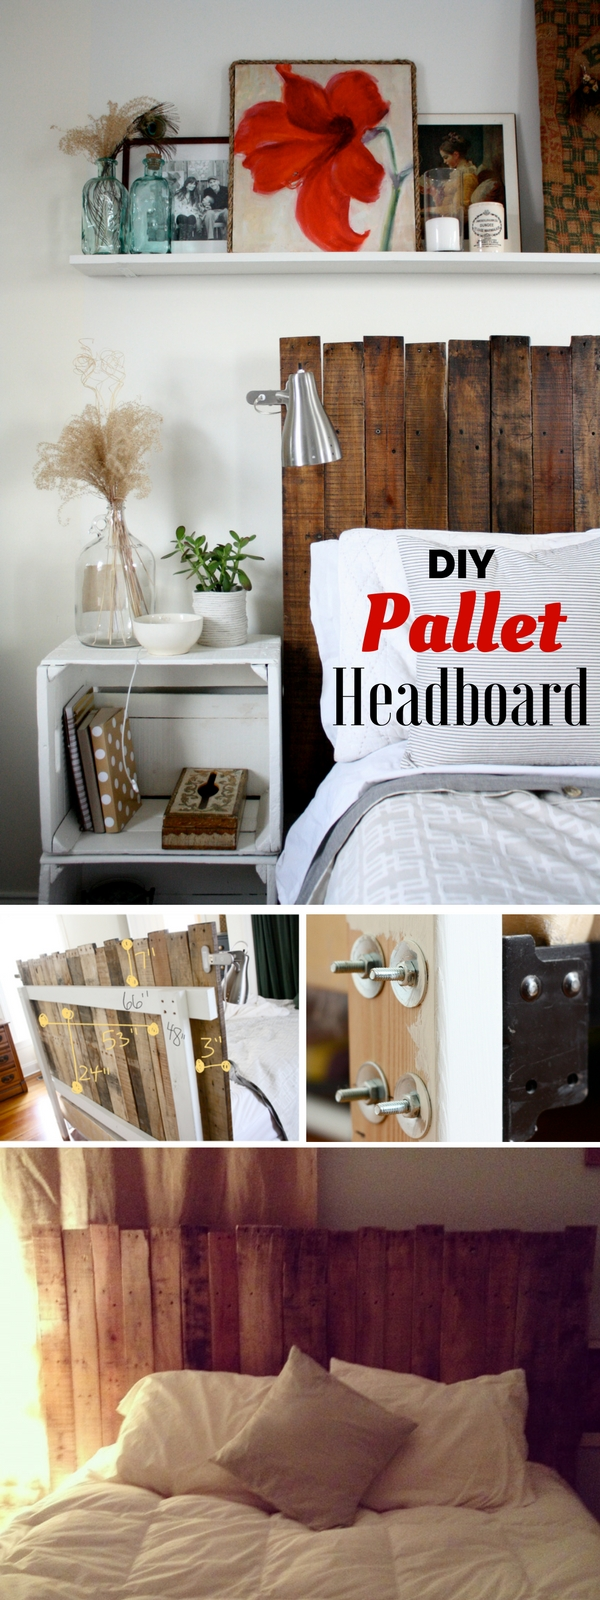 Check out how to build this easy DIY Pallet Headboard @istandarddesign